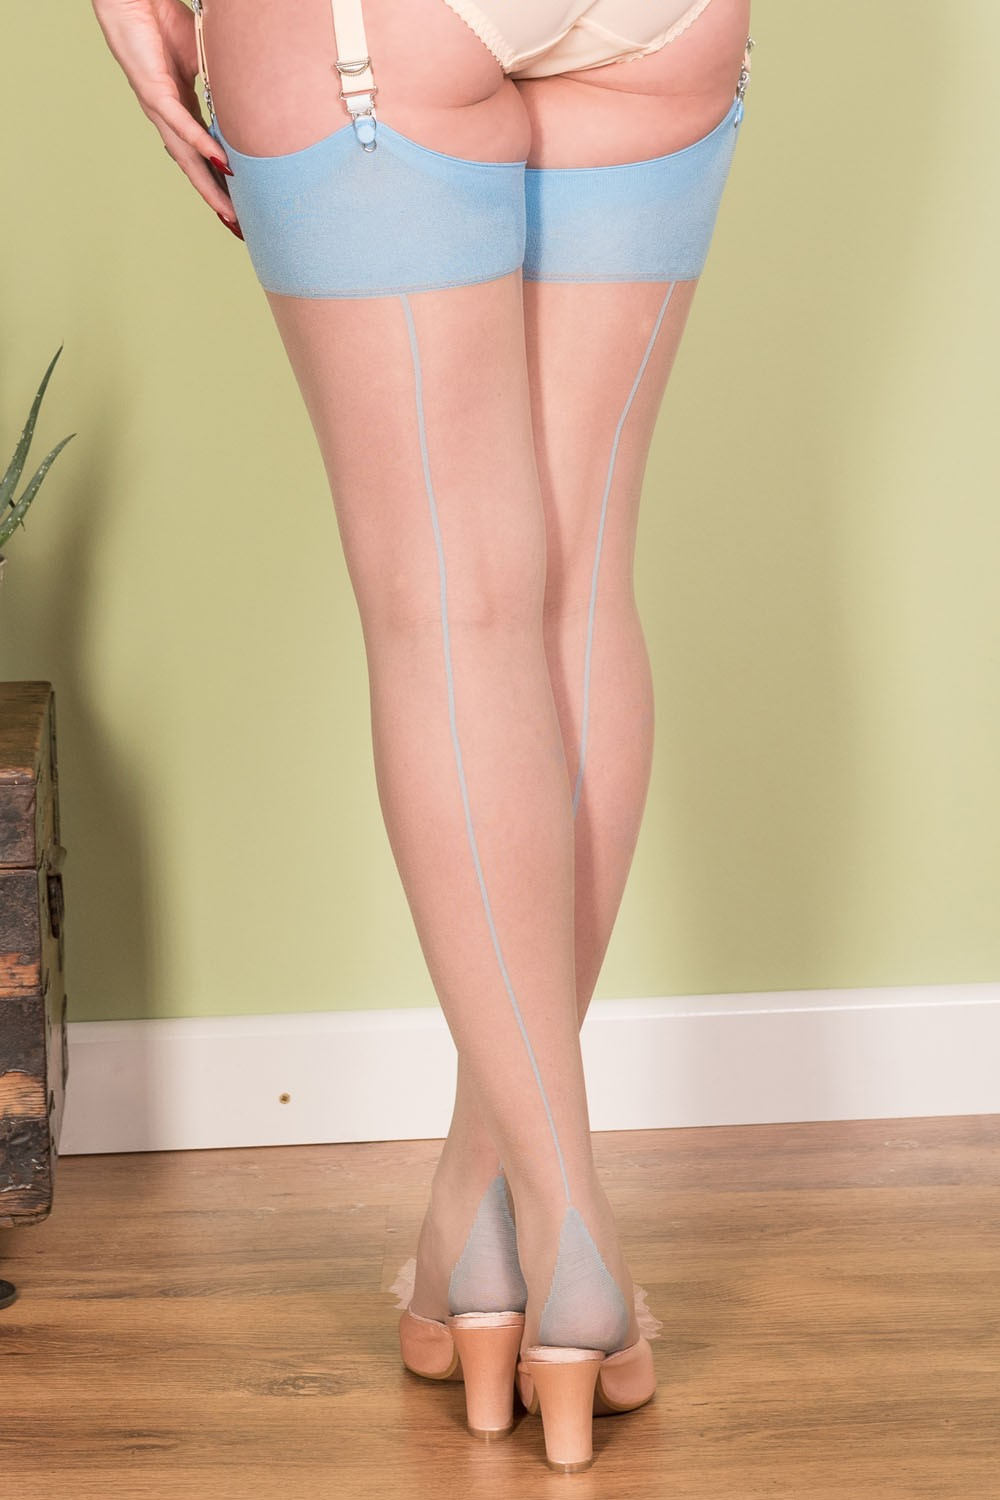 Glamour Blonde In Seamed Stockings An